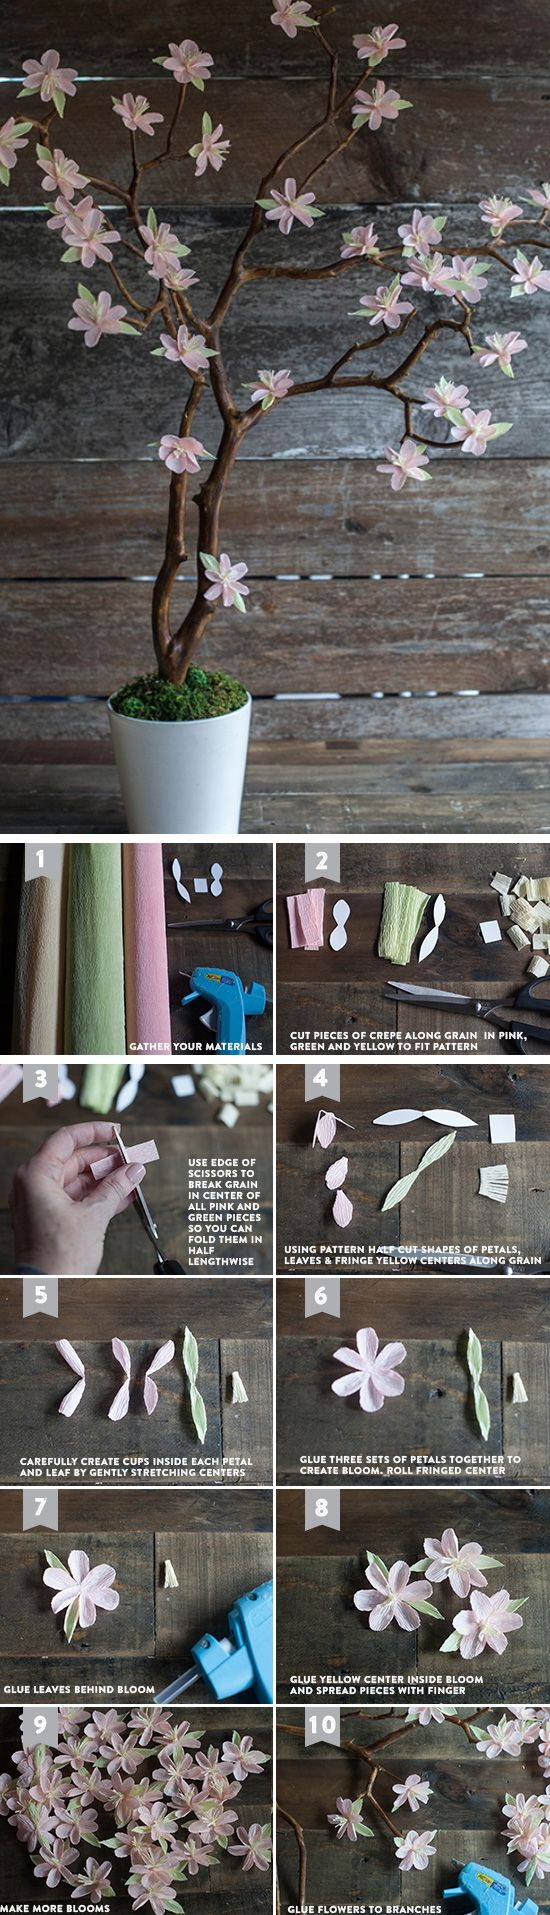 Crepe Paper Cherry Blossom Branches   Click Pic for 24 DIY Spring Wedding Ideas on a Budget   DIY Spring Wedding Decorations on a Budget